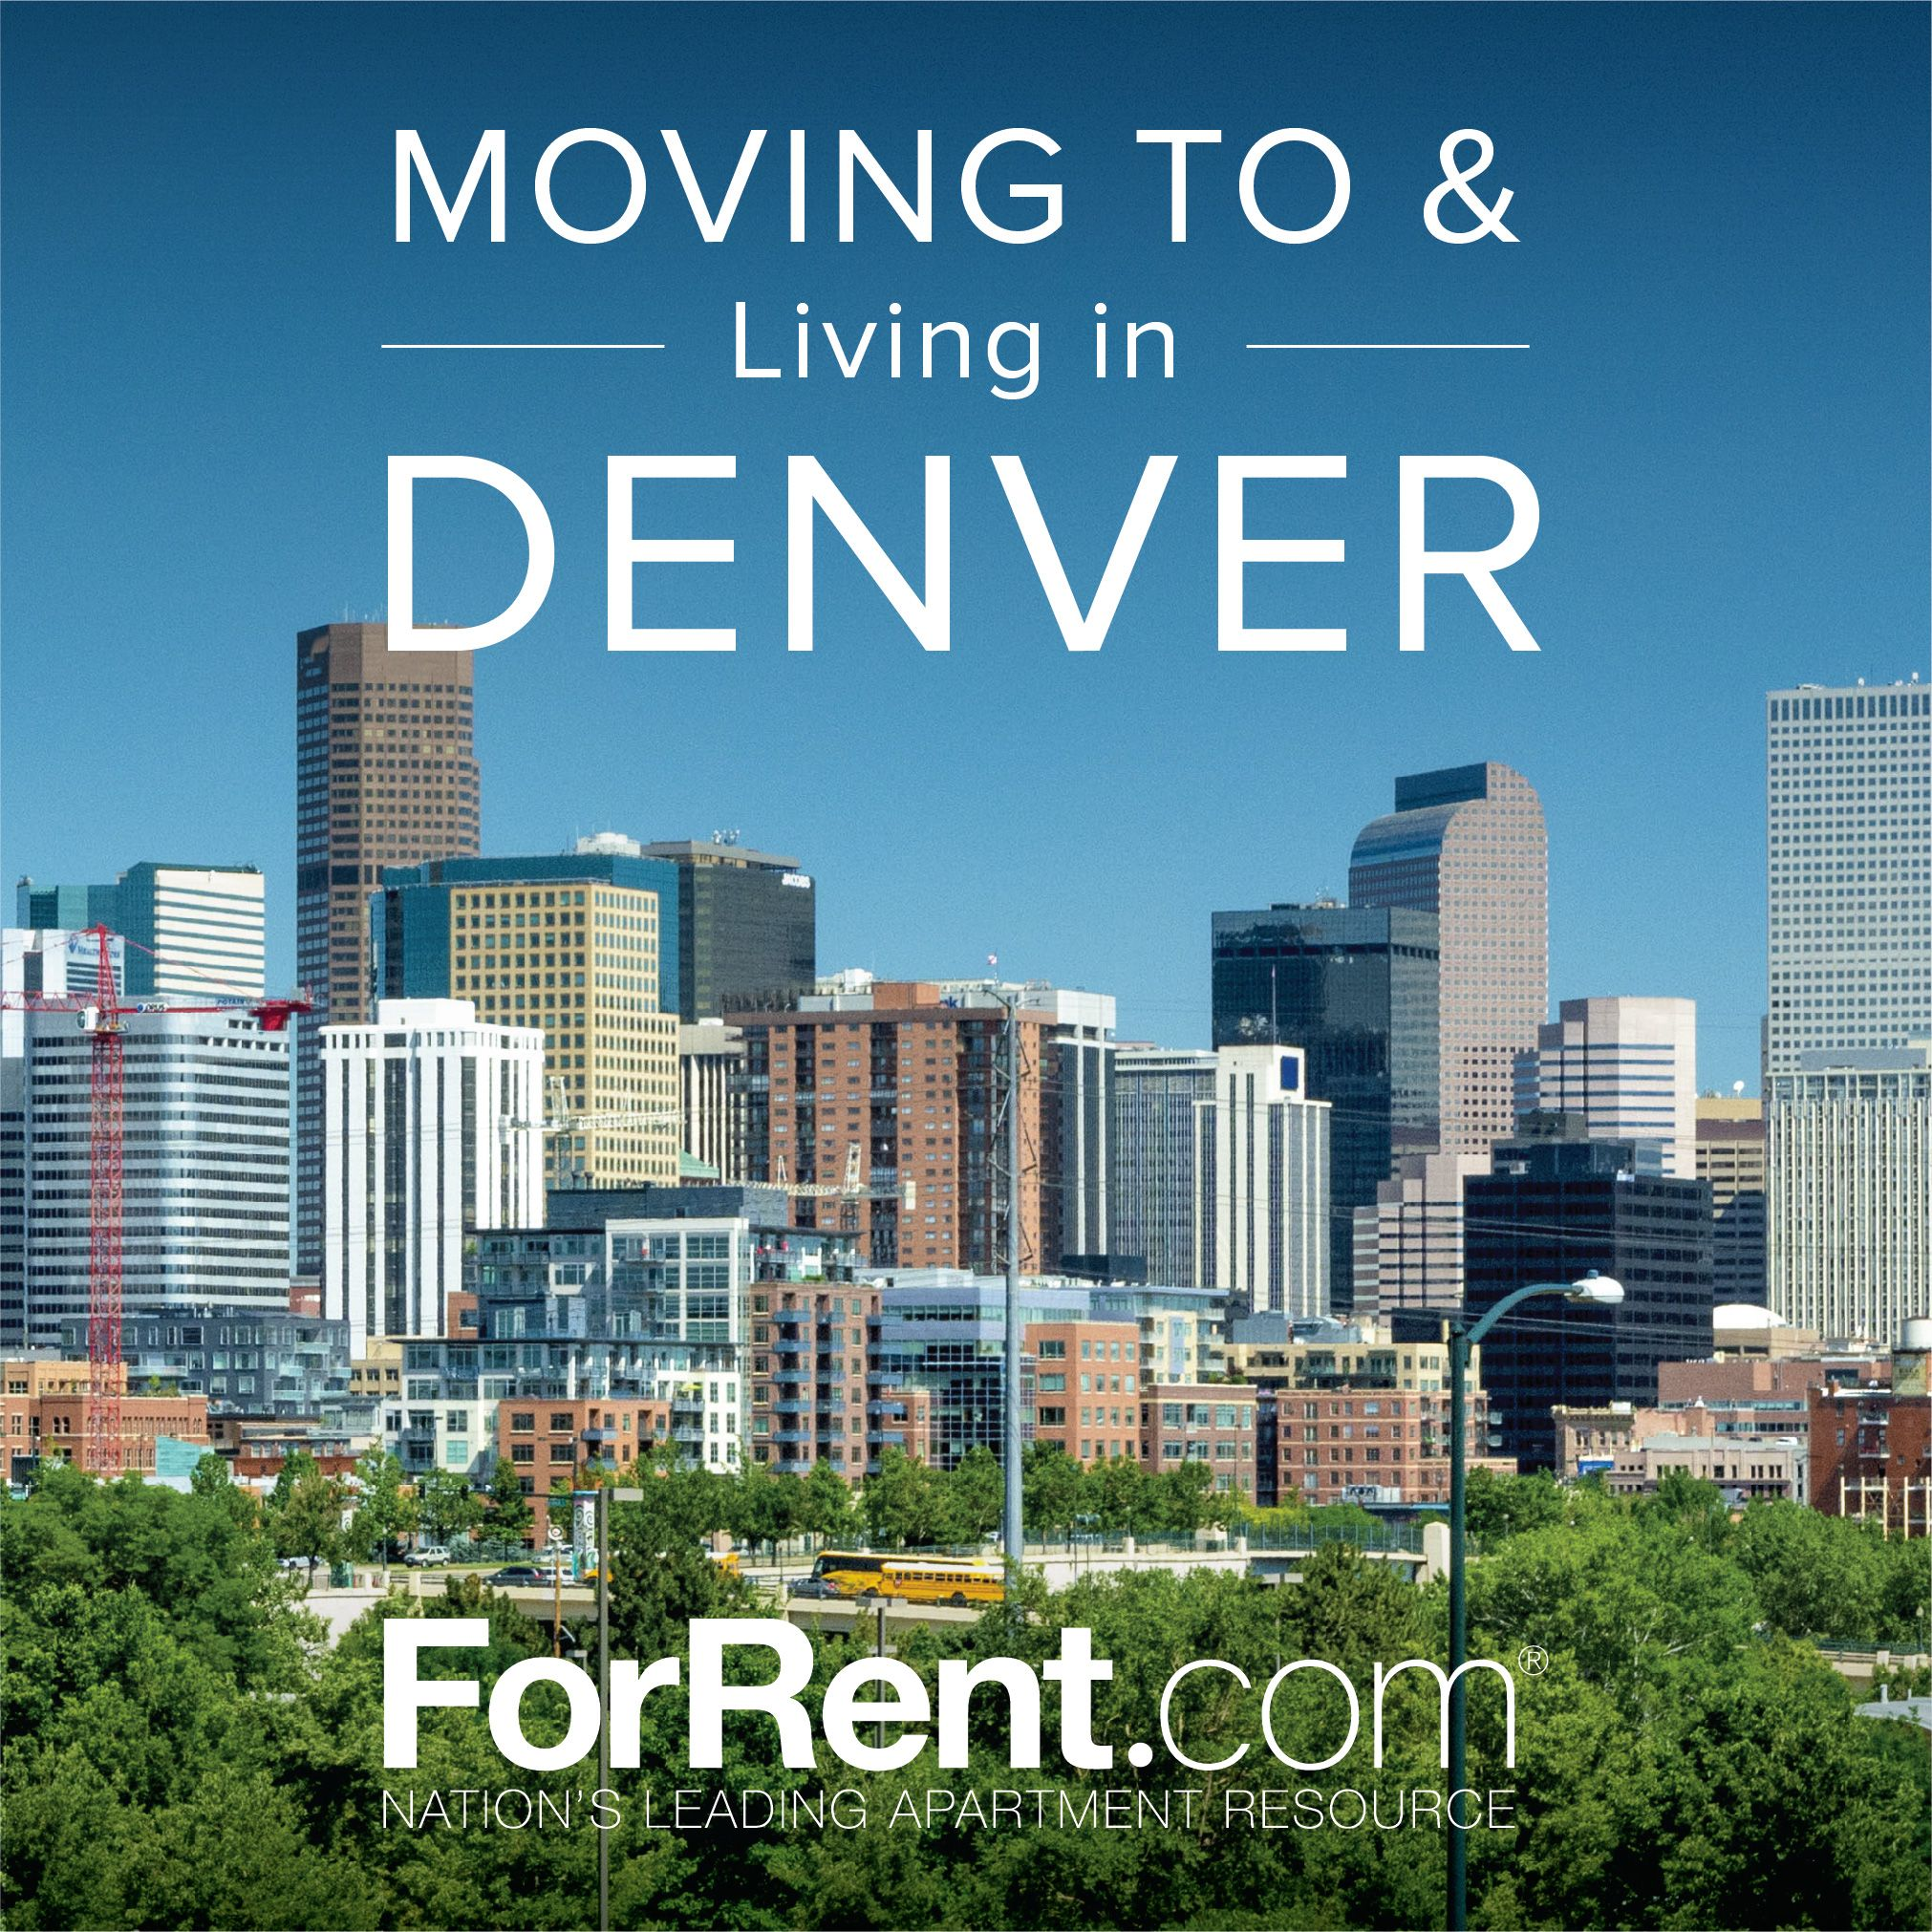 No matter your lifestyle, Denver delivers! Check out